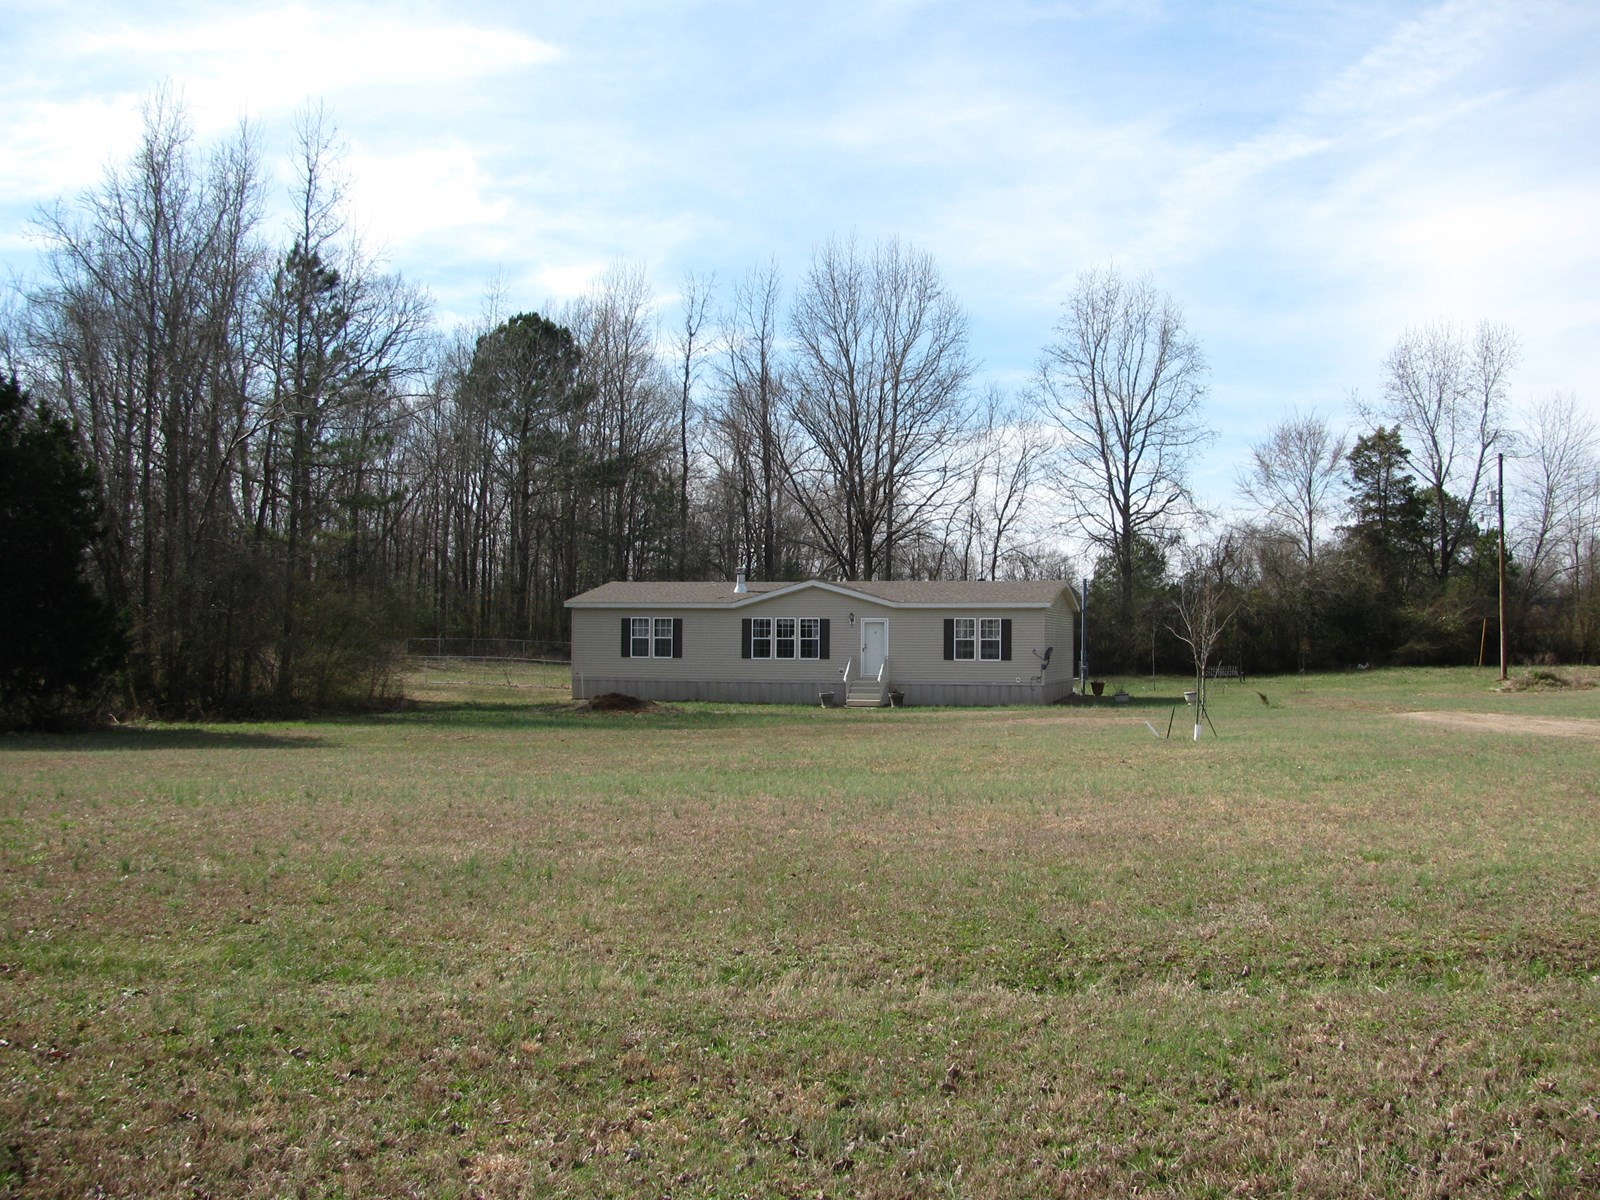 3 BEDROOM HOME IN TN FOR SALE ON 2 ACRES, STORAGE BUILDING